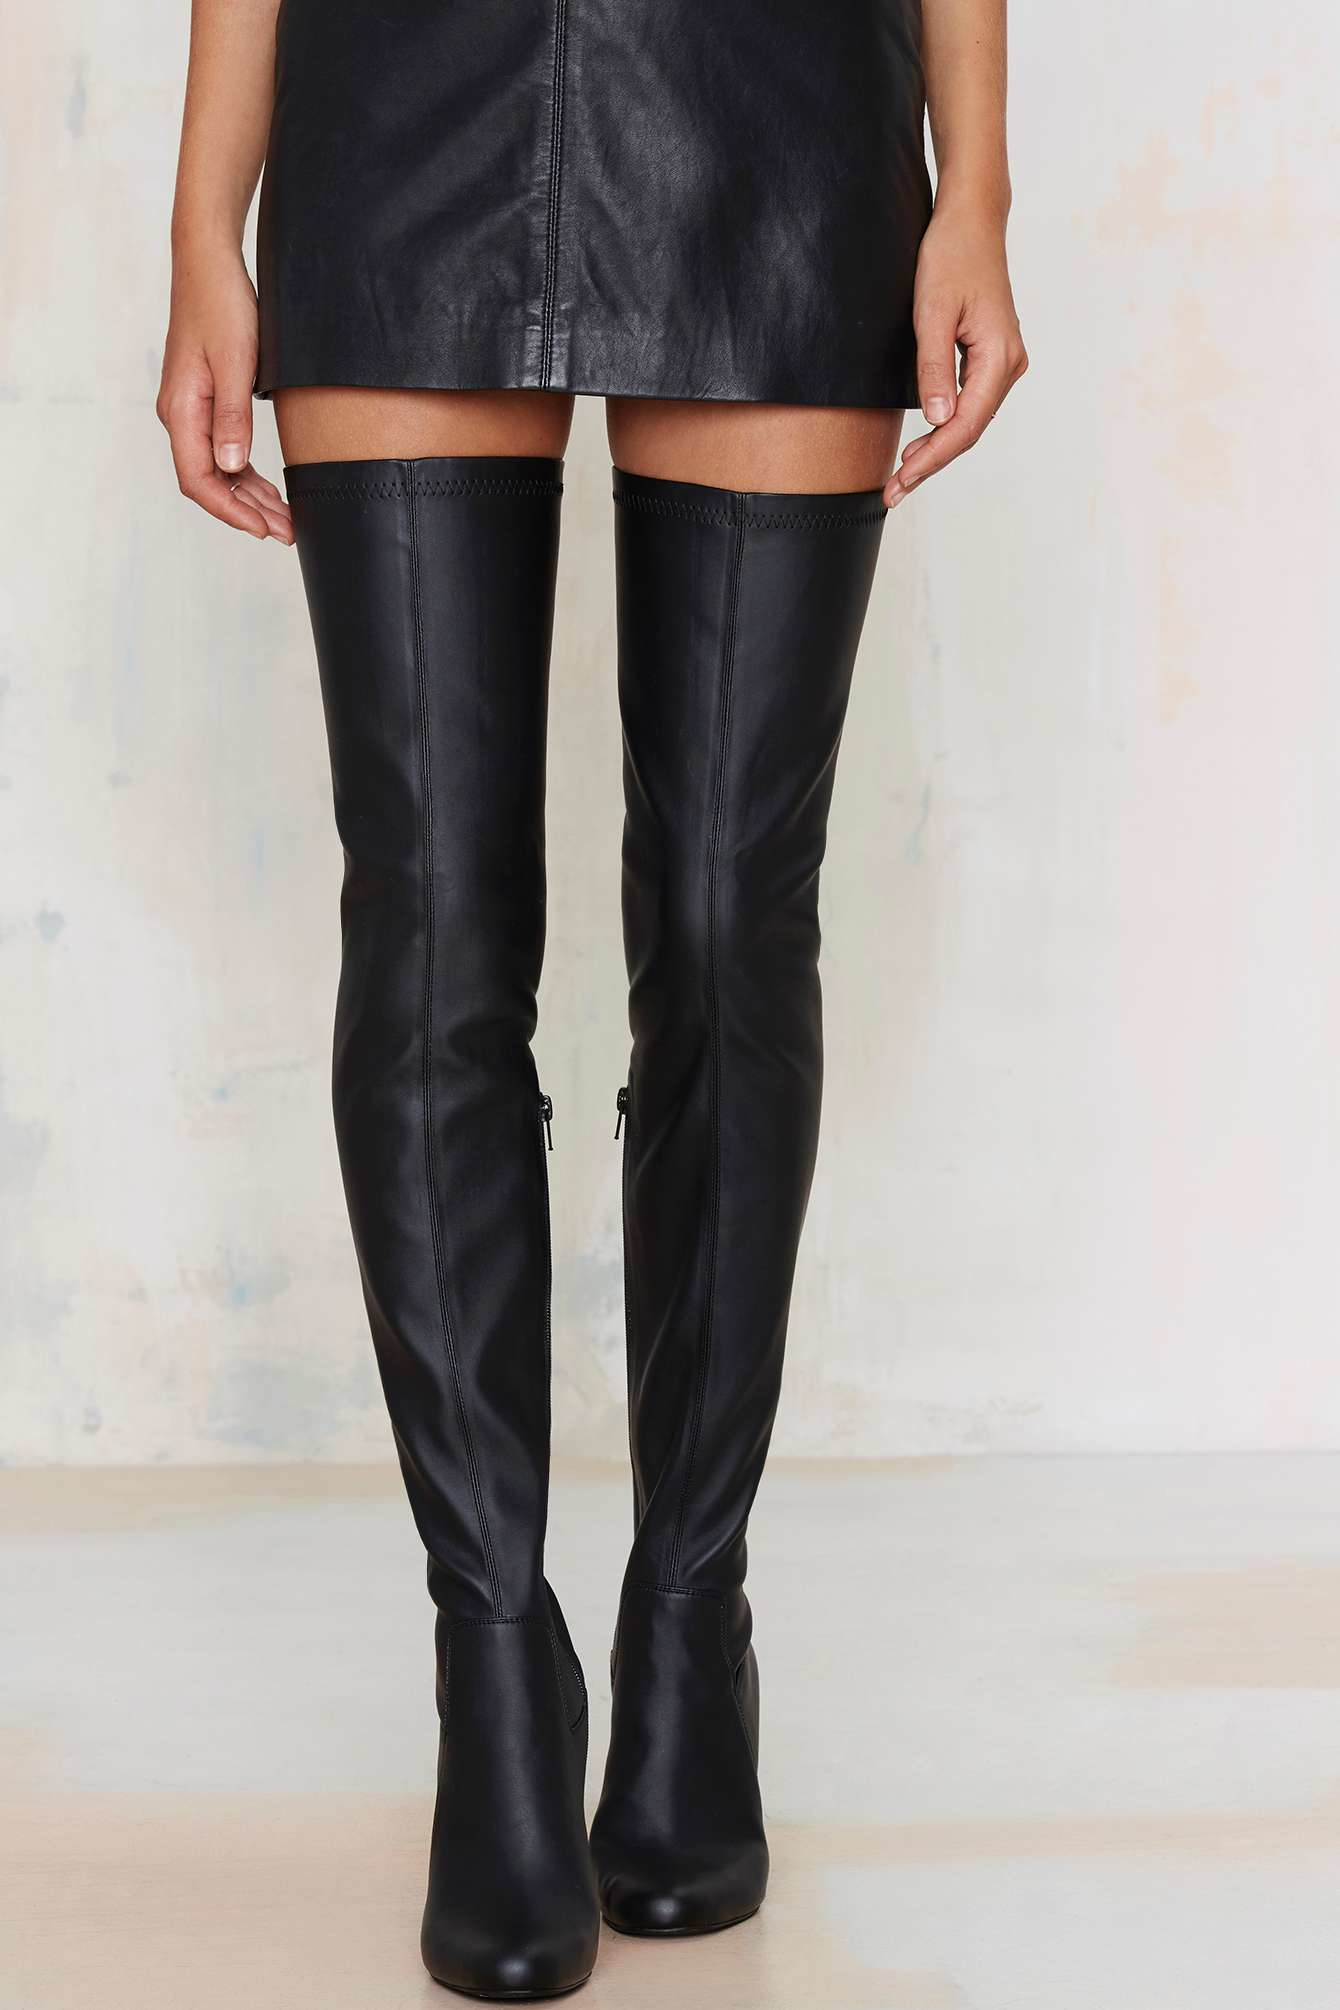 47e7205a5c9 Lyst - Jeffrey Campbell Perouze Thigh High Boot in Black